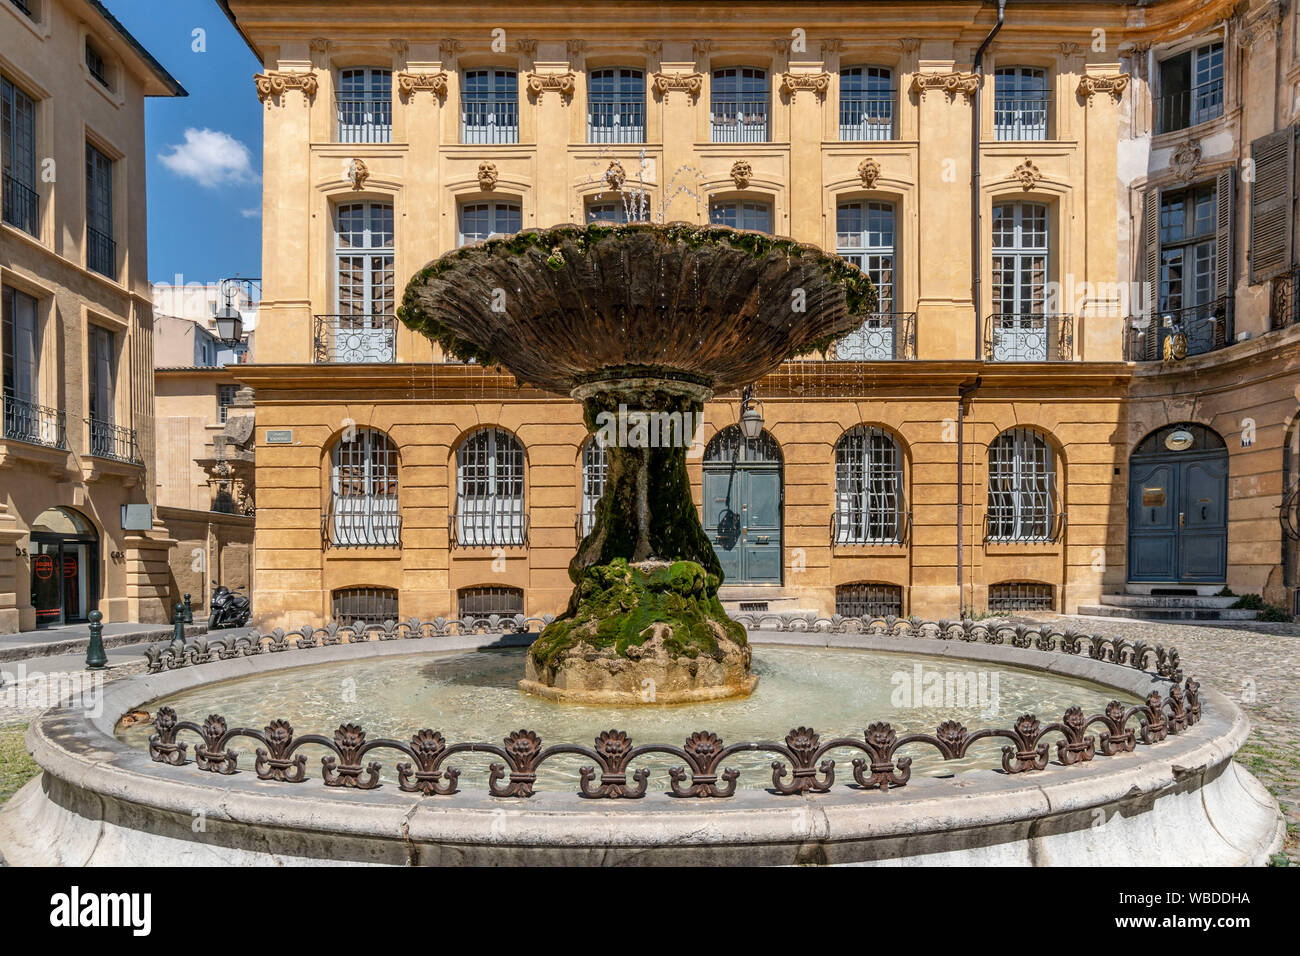 historic fountain , Place d'Albertas in Aix en Provence, france Stock Photo